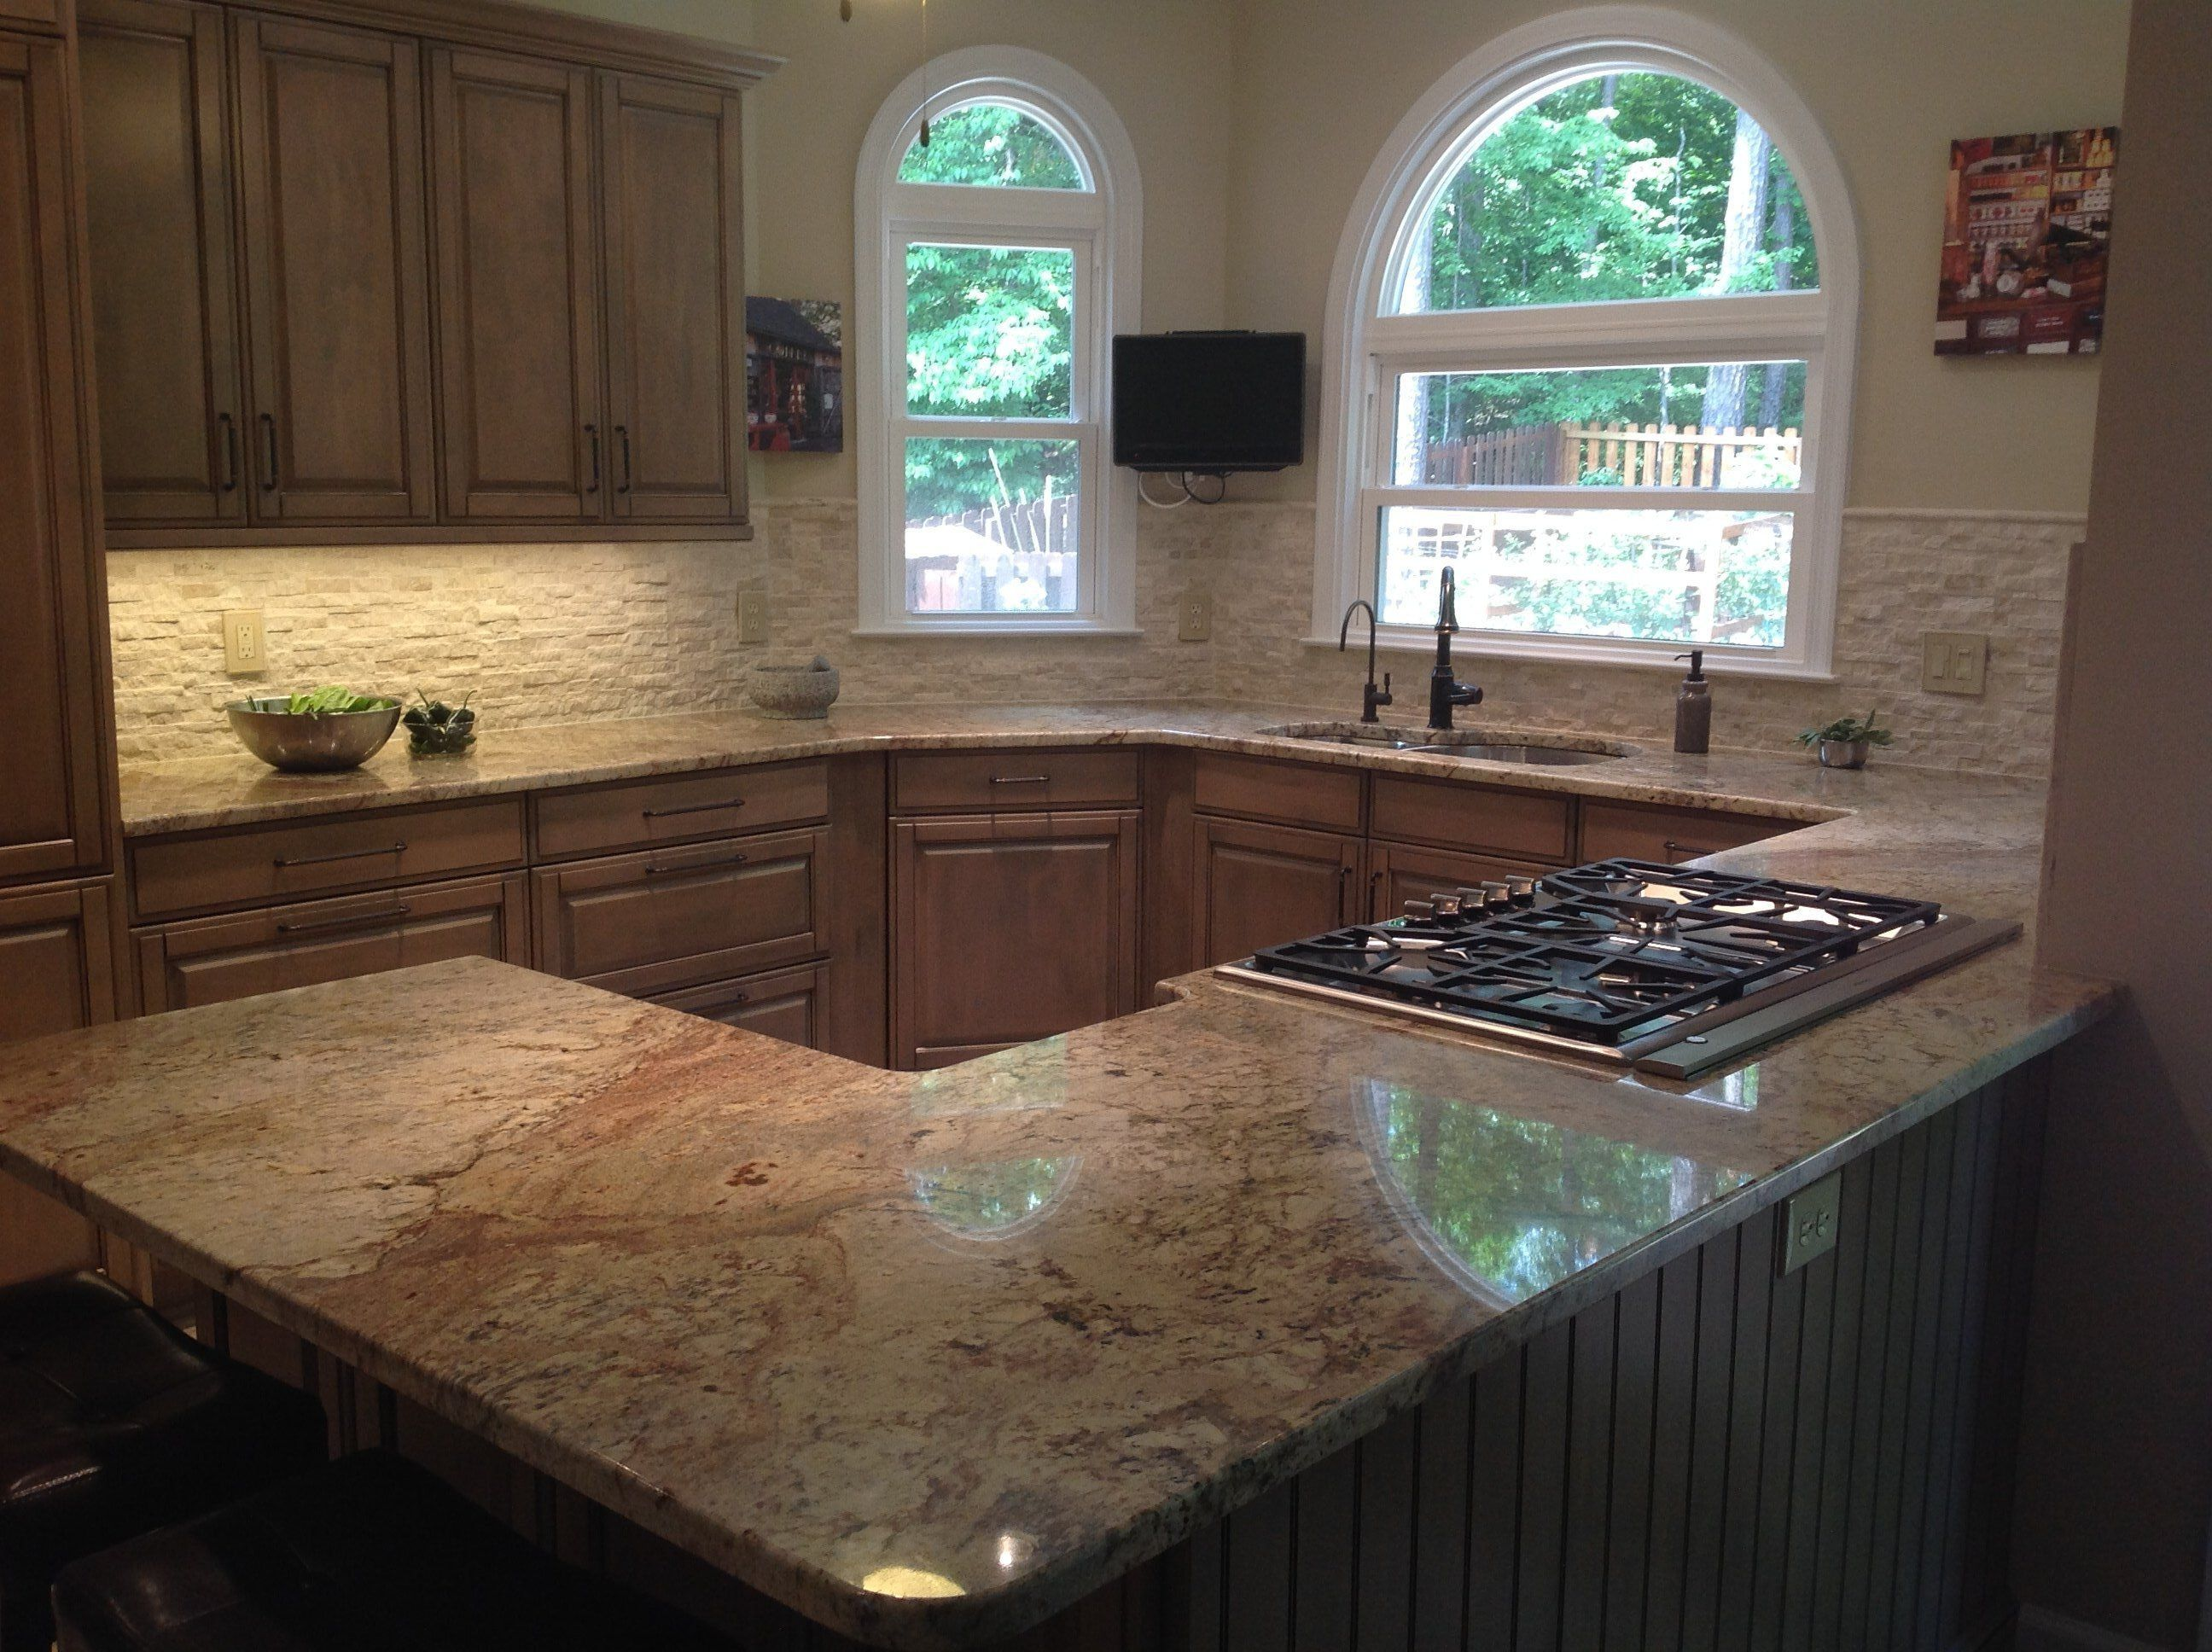 Cabinetry Is Brookhaven By Woodmode The Finish Is Harbor